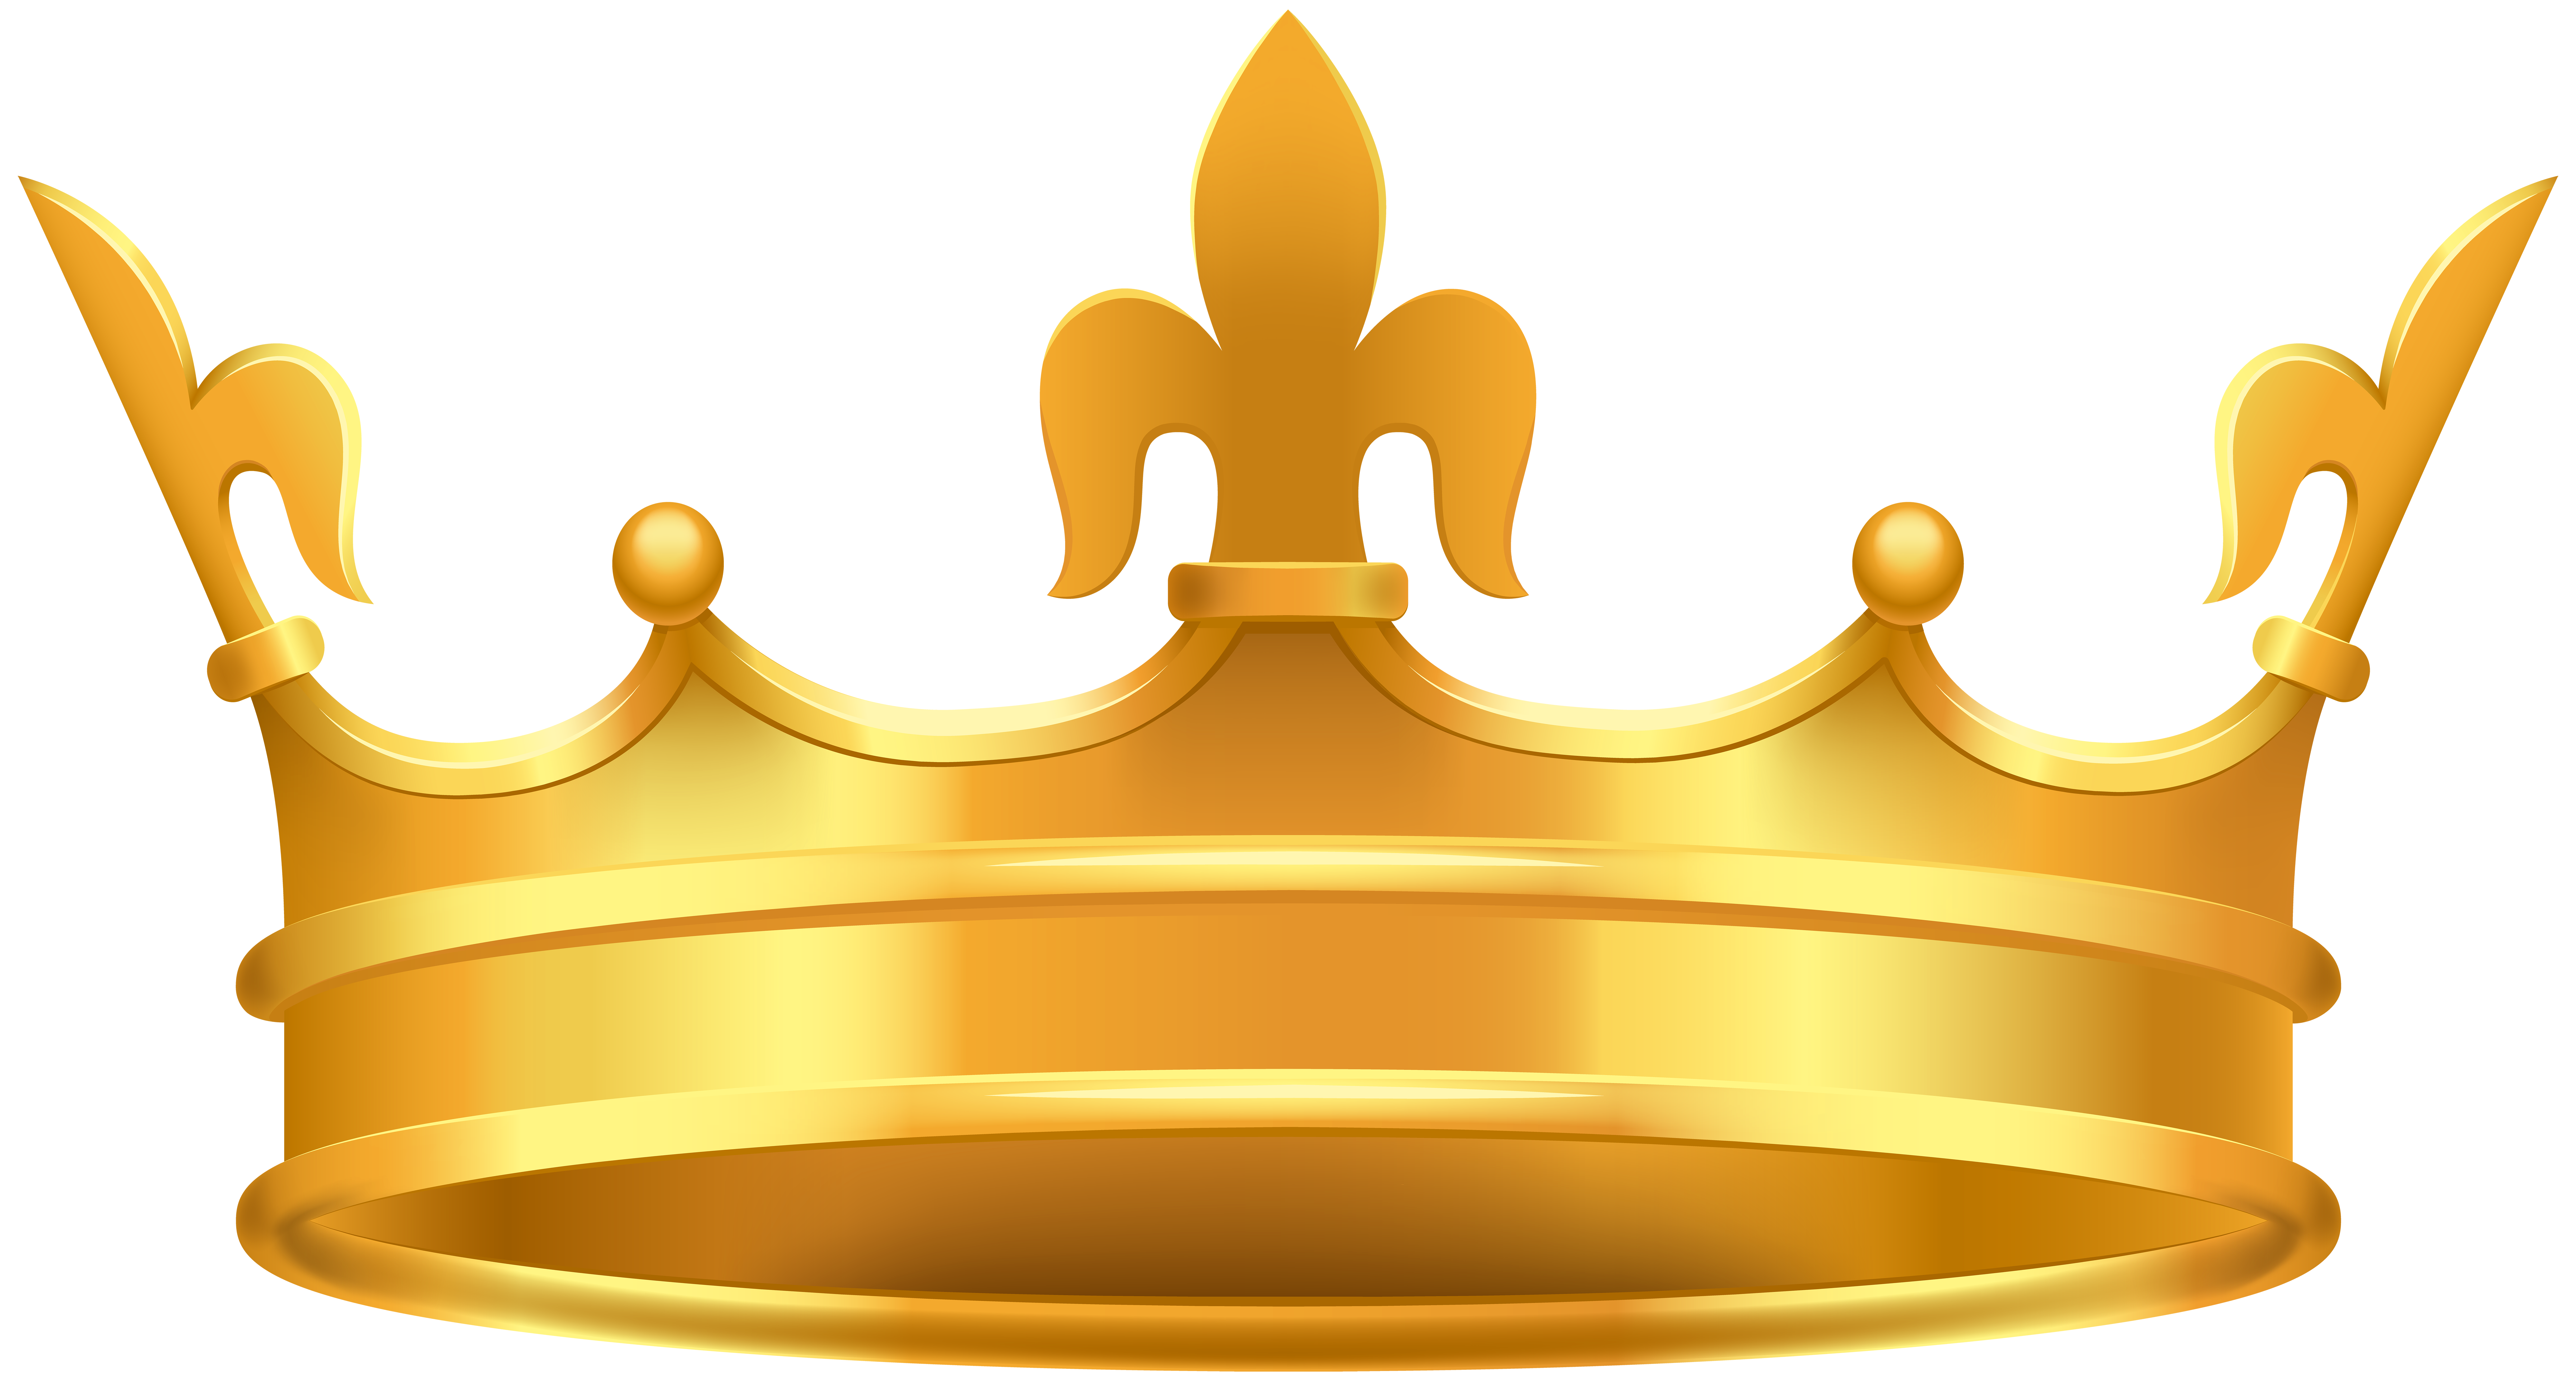 Image gallery yopriceville high. Crown clip art png picture black and white library